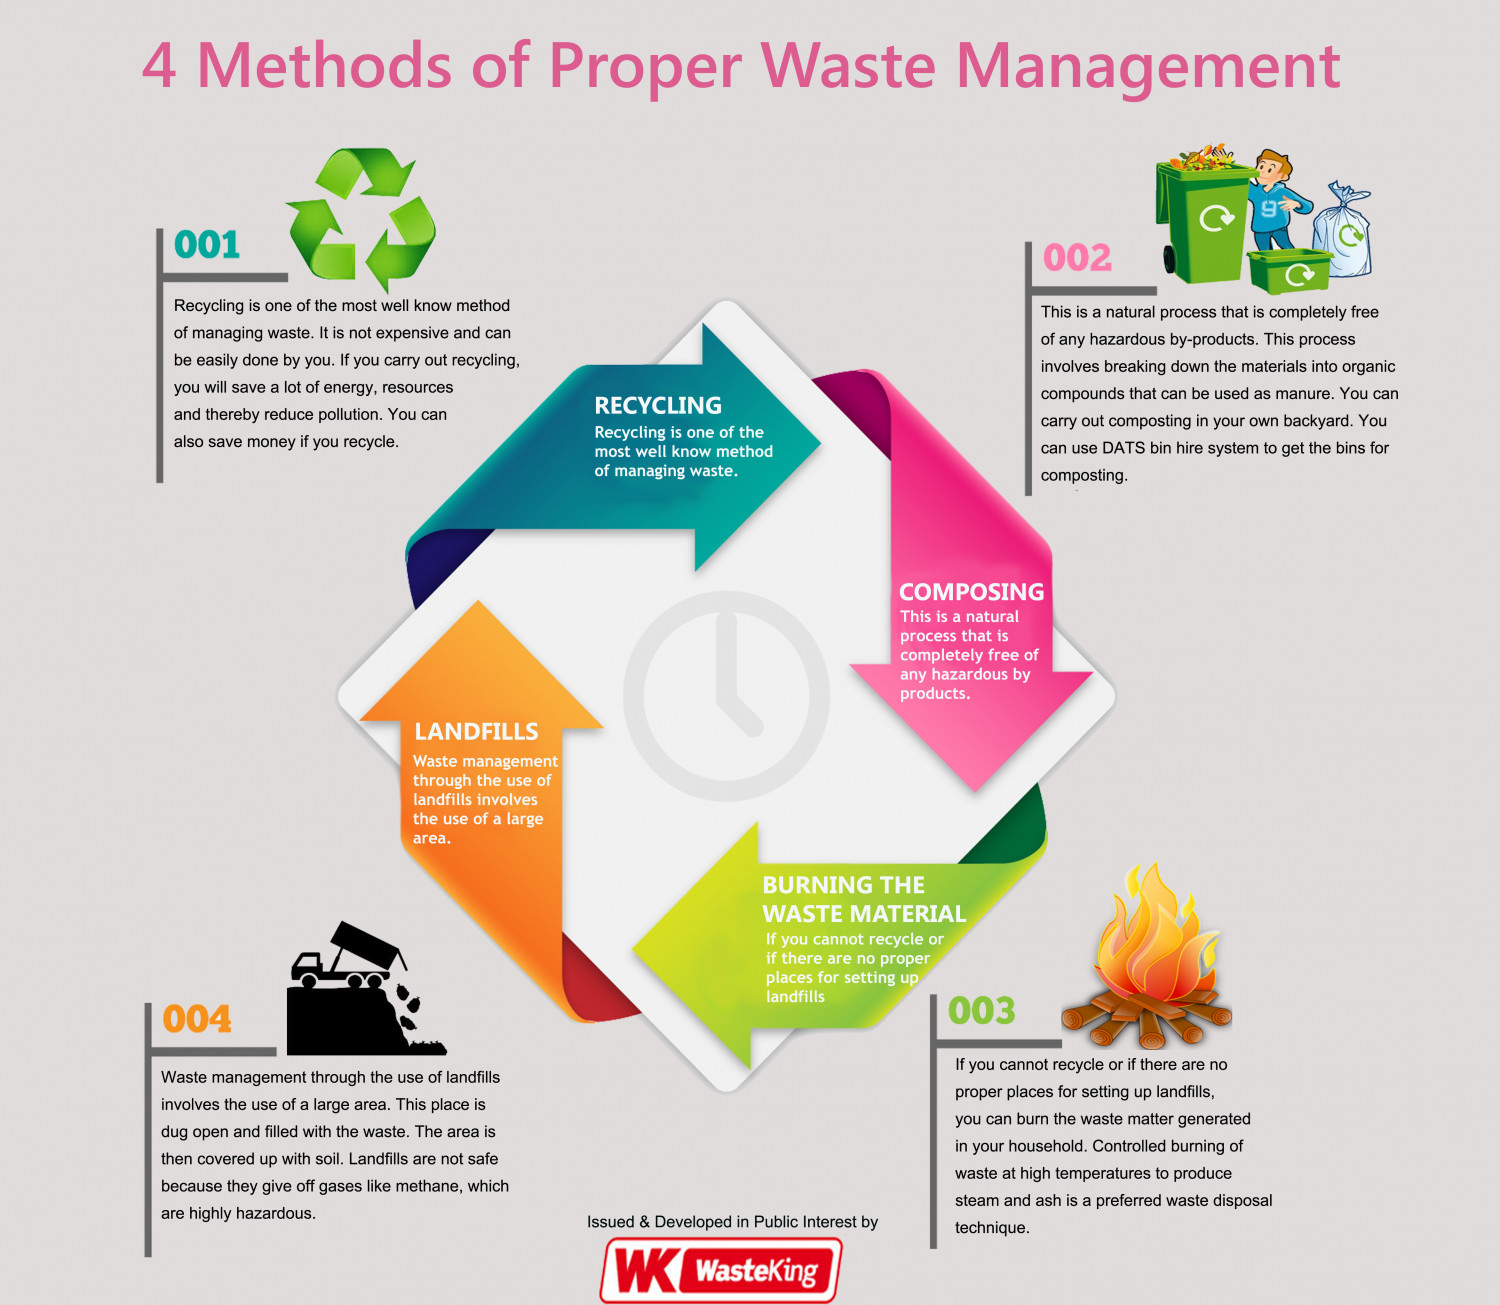 4 Methods Of Proper Waste Management